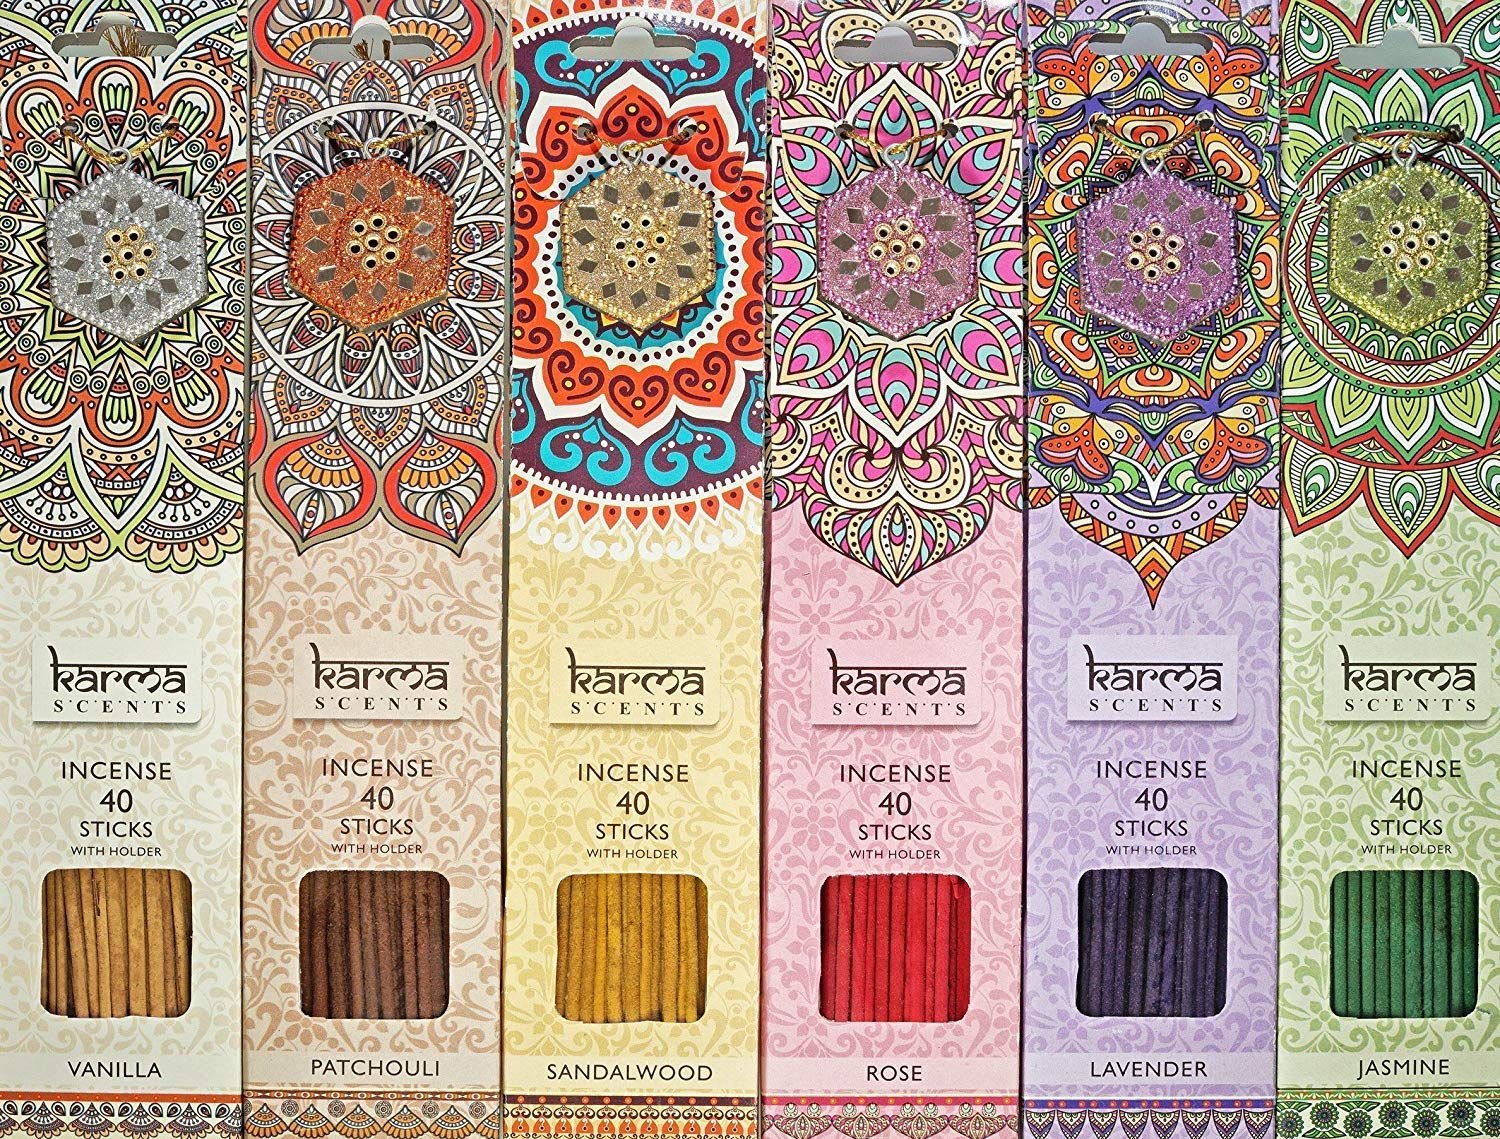 Karma Scents Premium Incense Sticks 6 Set Pack, Lavender, Patchouli, Vanilla, Sandalwood, Jasmine, and Rose. Each Pack Comes with a sparkley Holder in Each Box 240 Sticks by Karma Scents (Image #1)